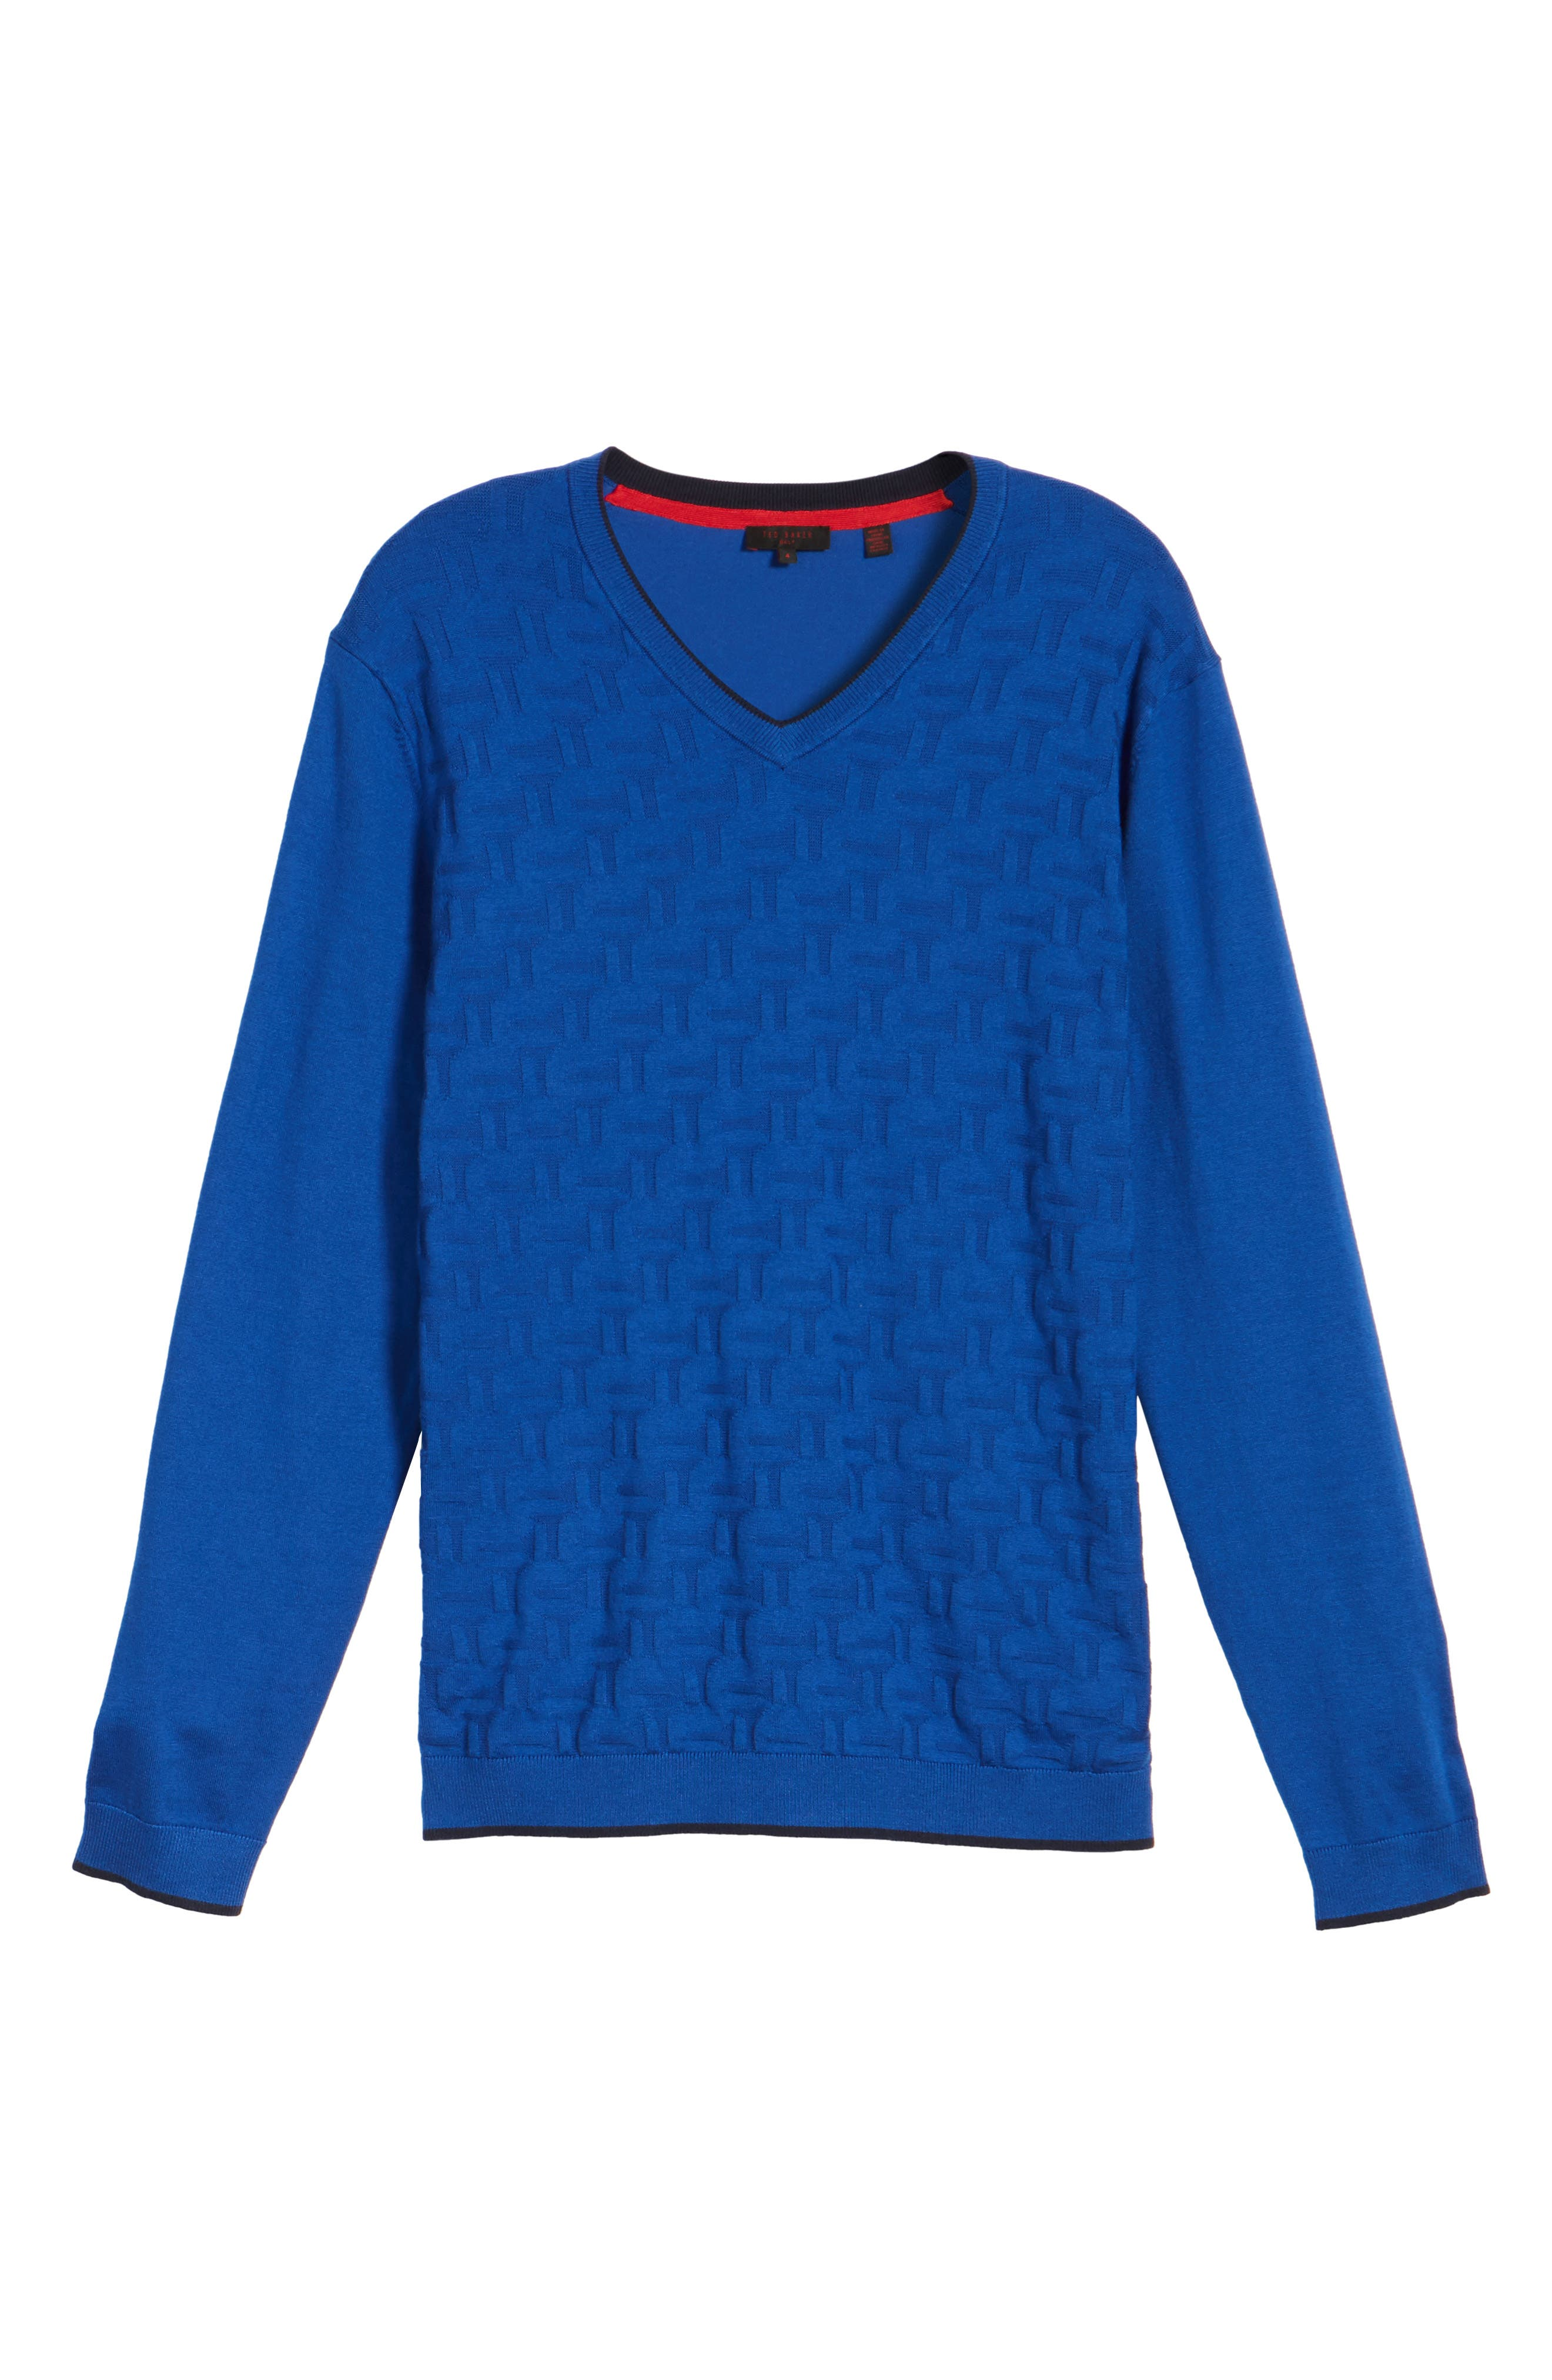 Armstro Tipped Golf Tee Sweater,                             Alternate thumbnail 36, color,